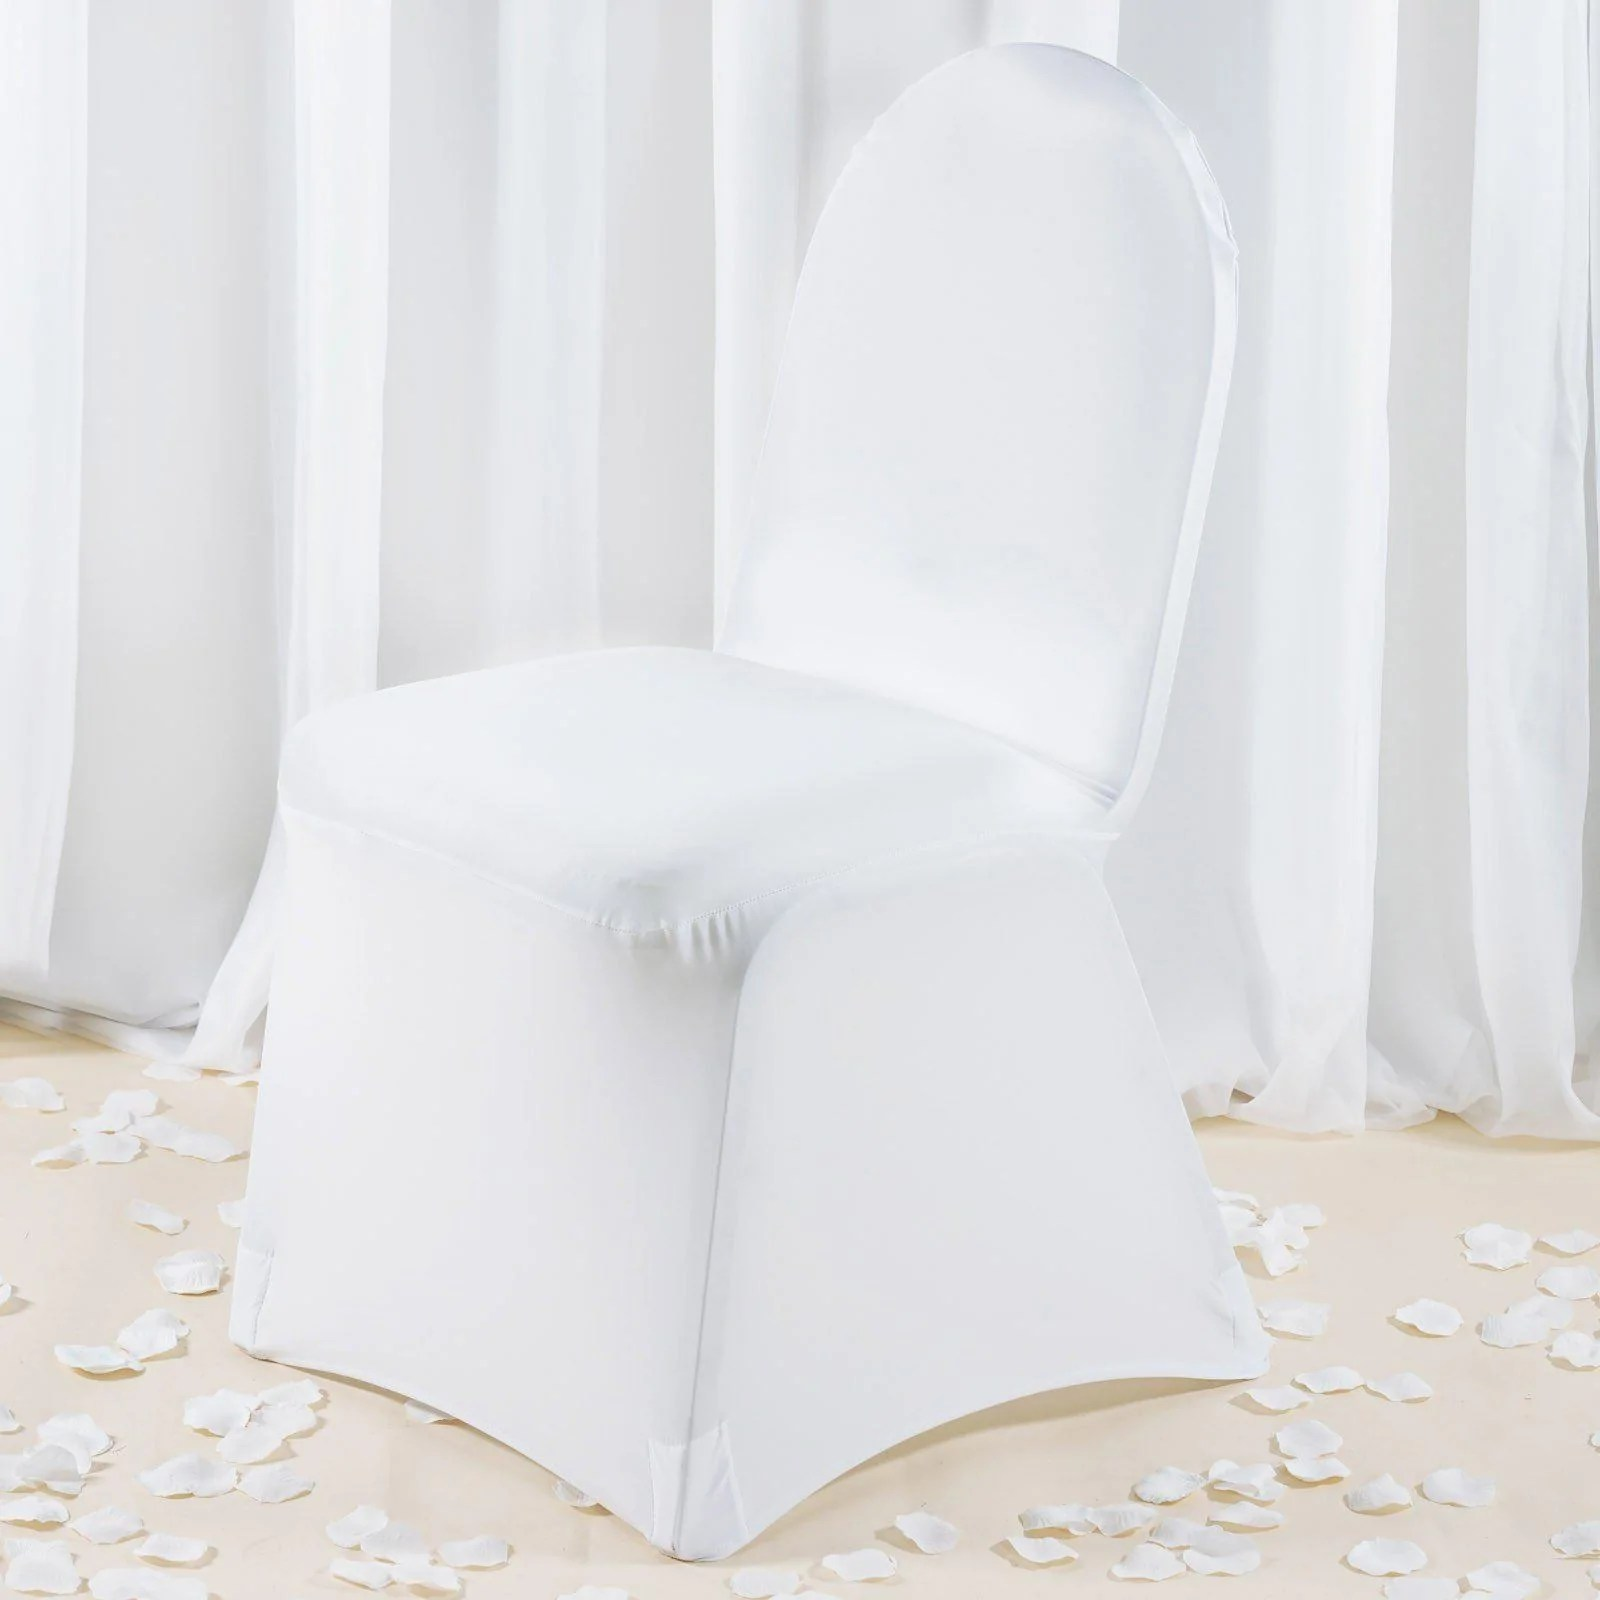 white banquet chair covers 4 table set premium spandex tablecloths factory cover